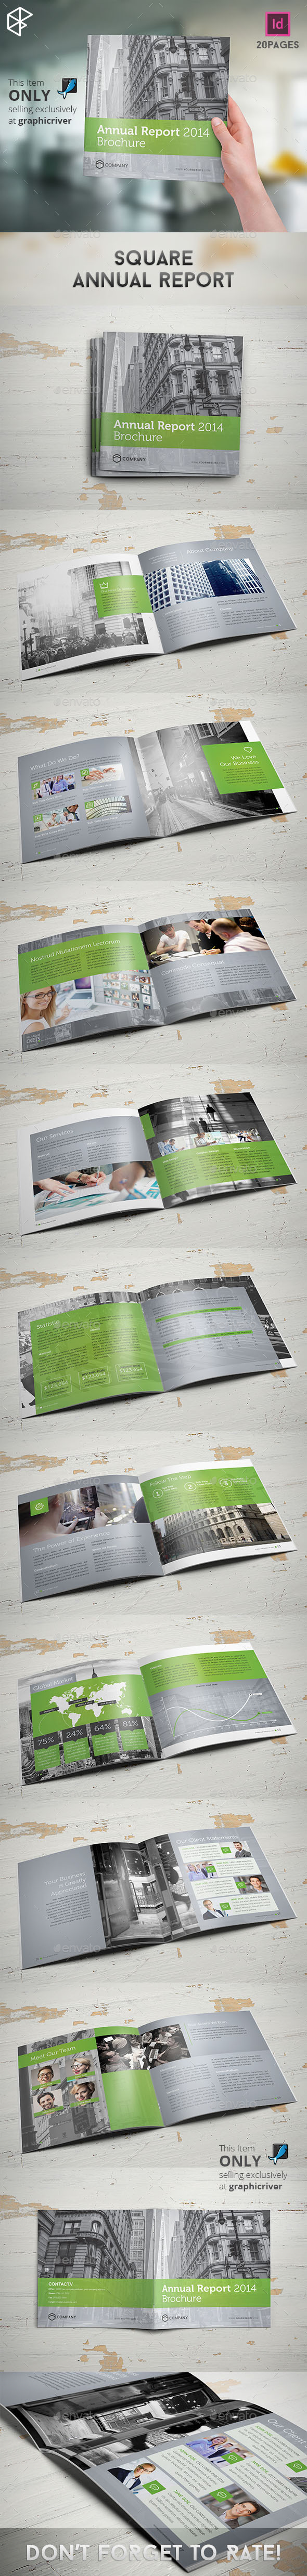 GraphicRiver Square Annual Report 10280698